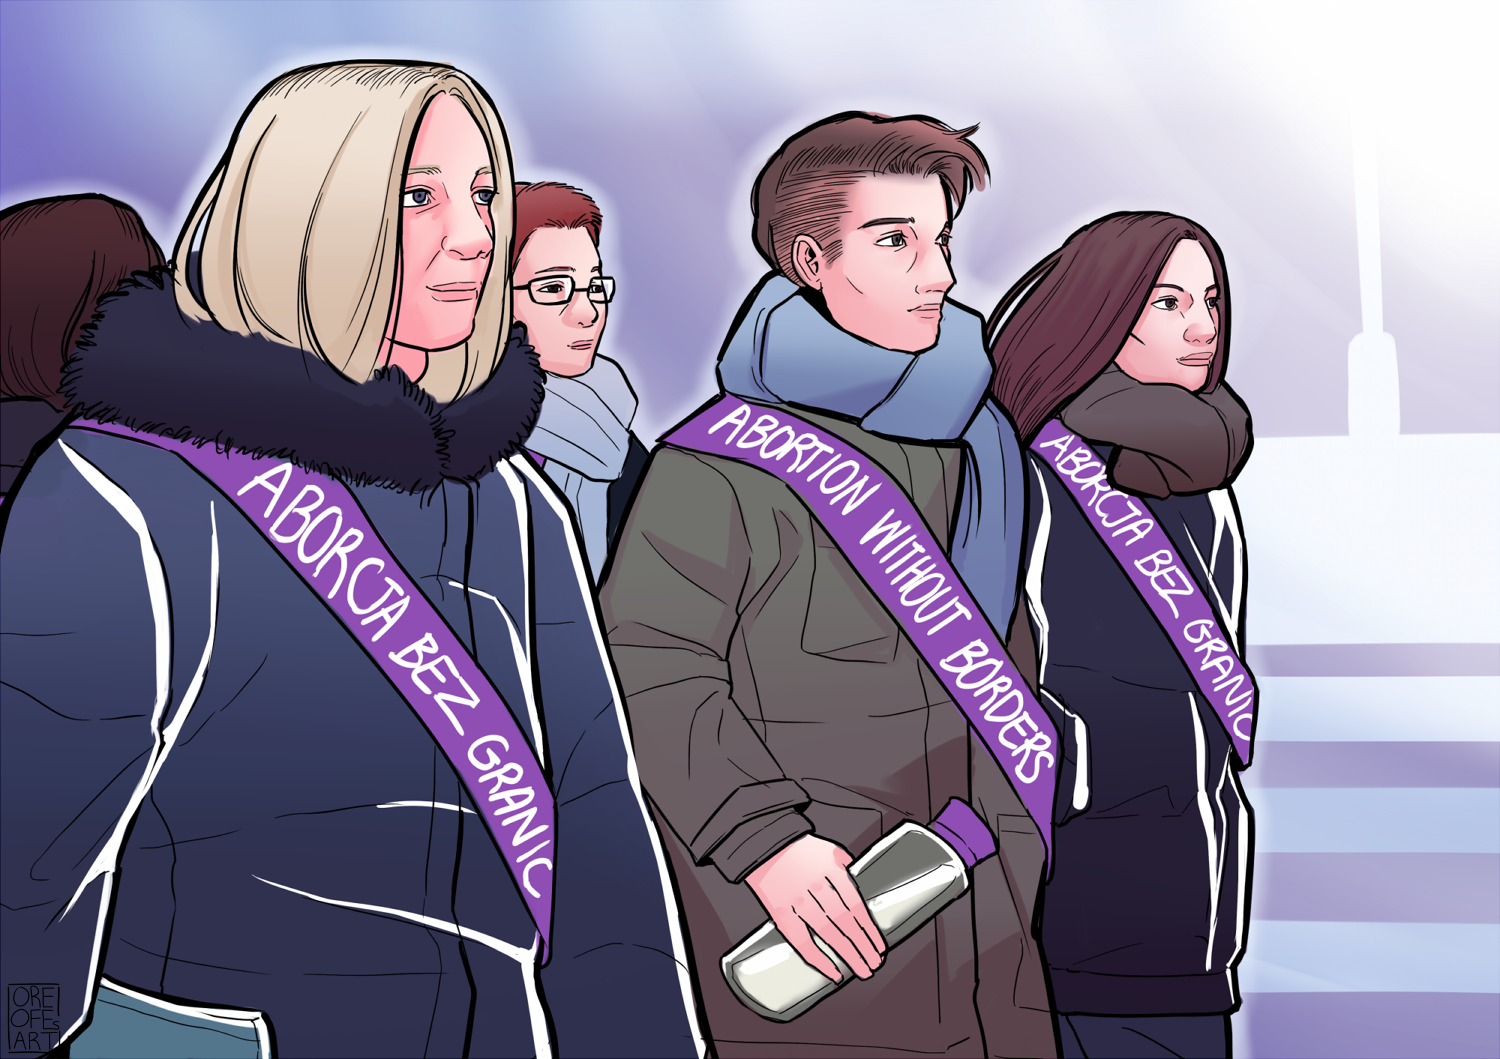 Sketch of four women wearing Abortion Without Borders sashes over their winter coats as they march in protest